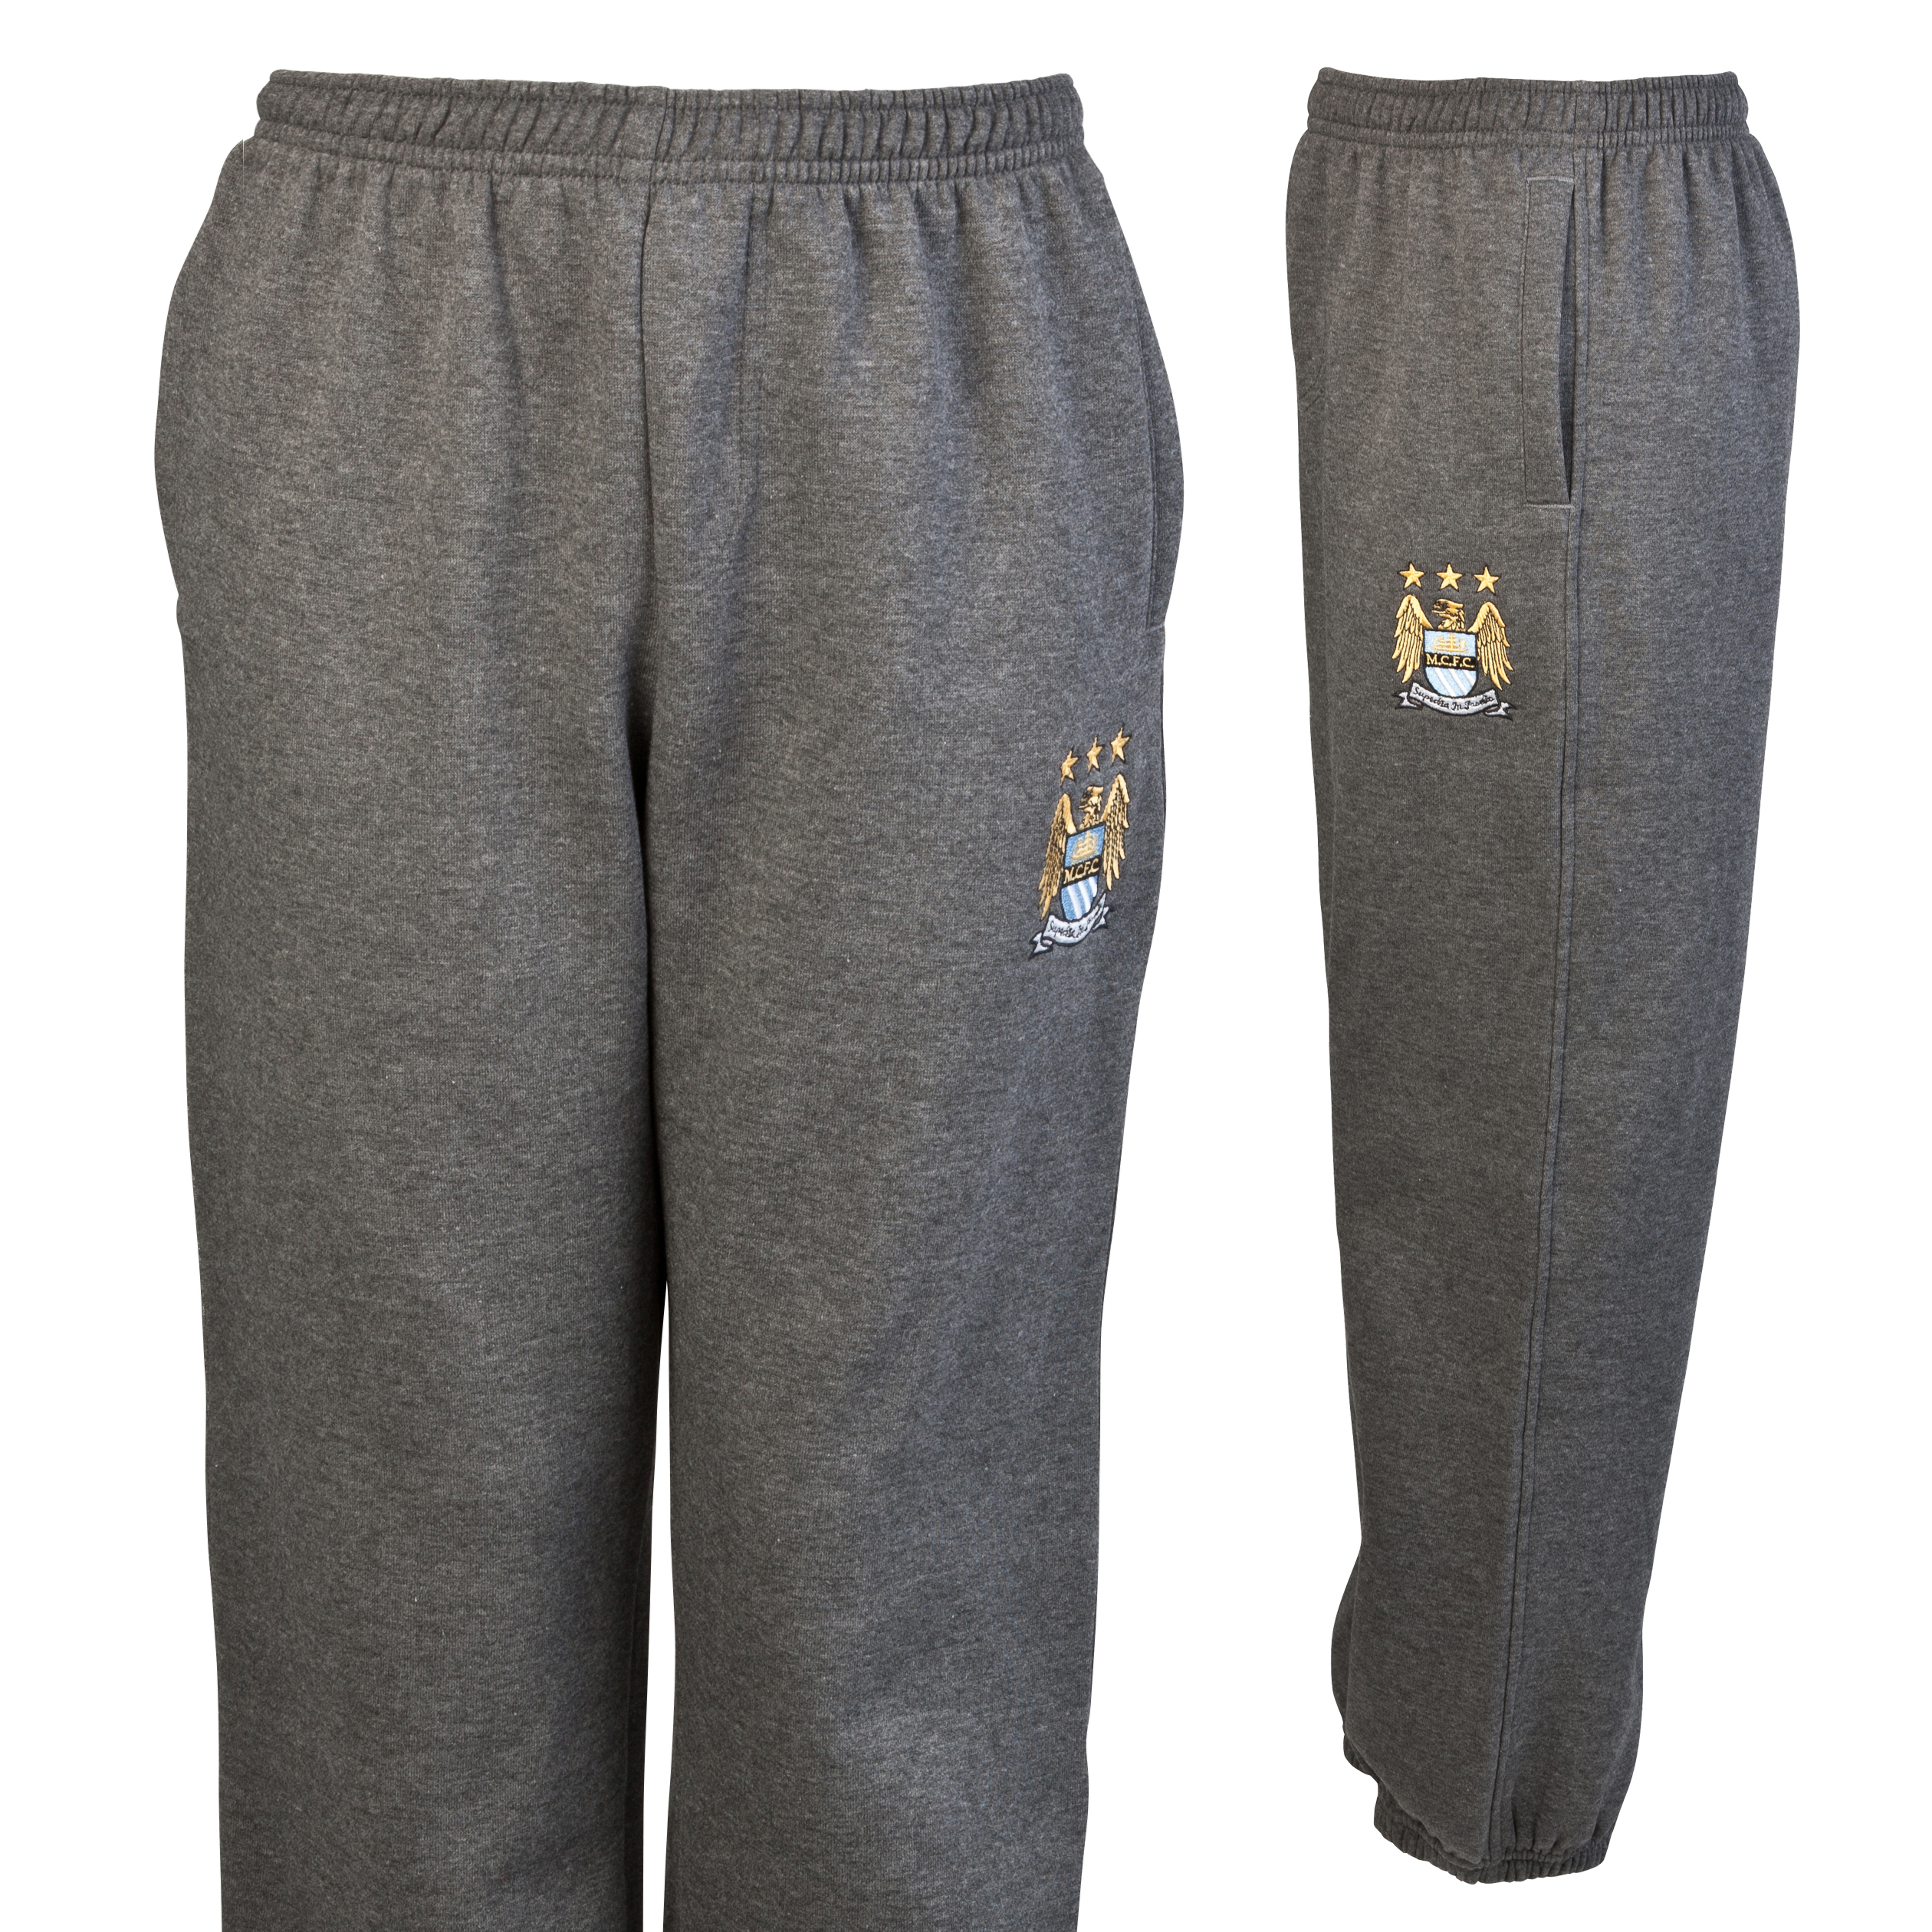 Manchester City Essential Jungle Jog Pants - Charcoal Marl - Infant Boys